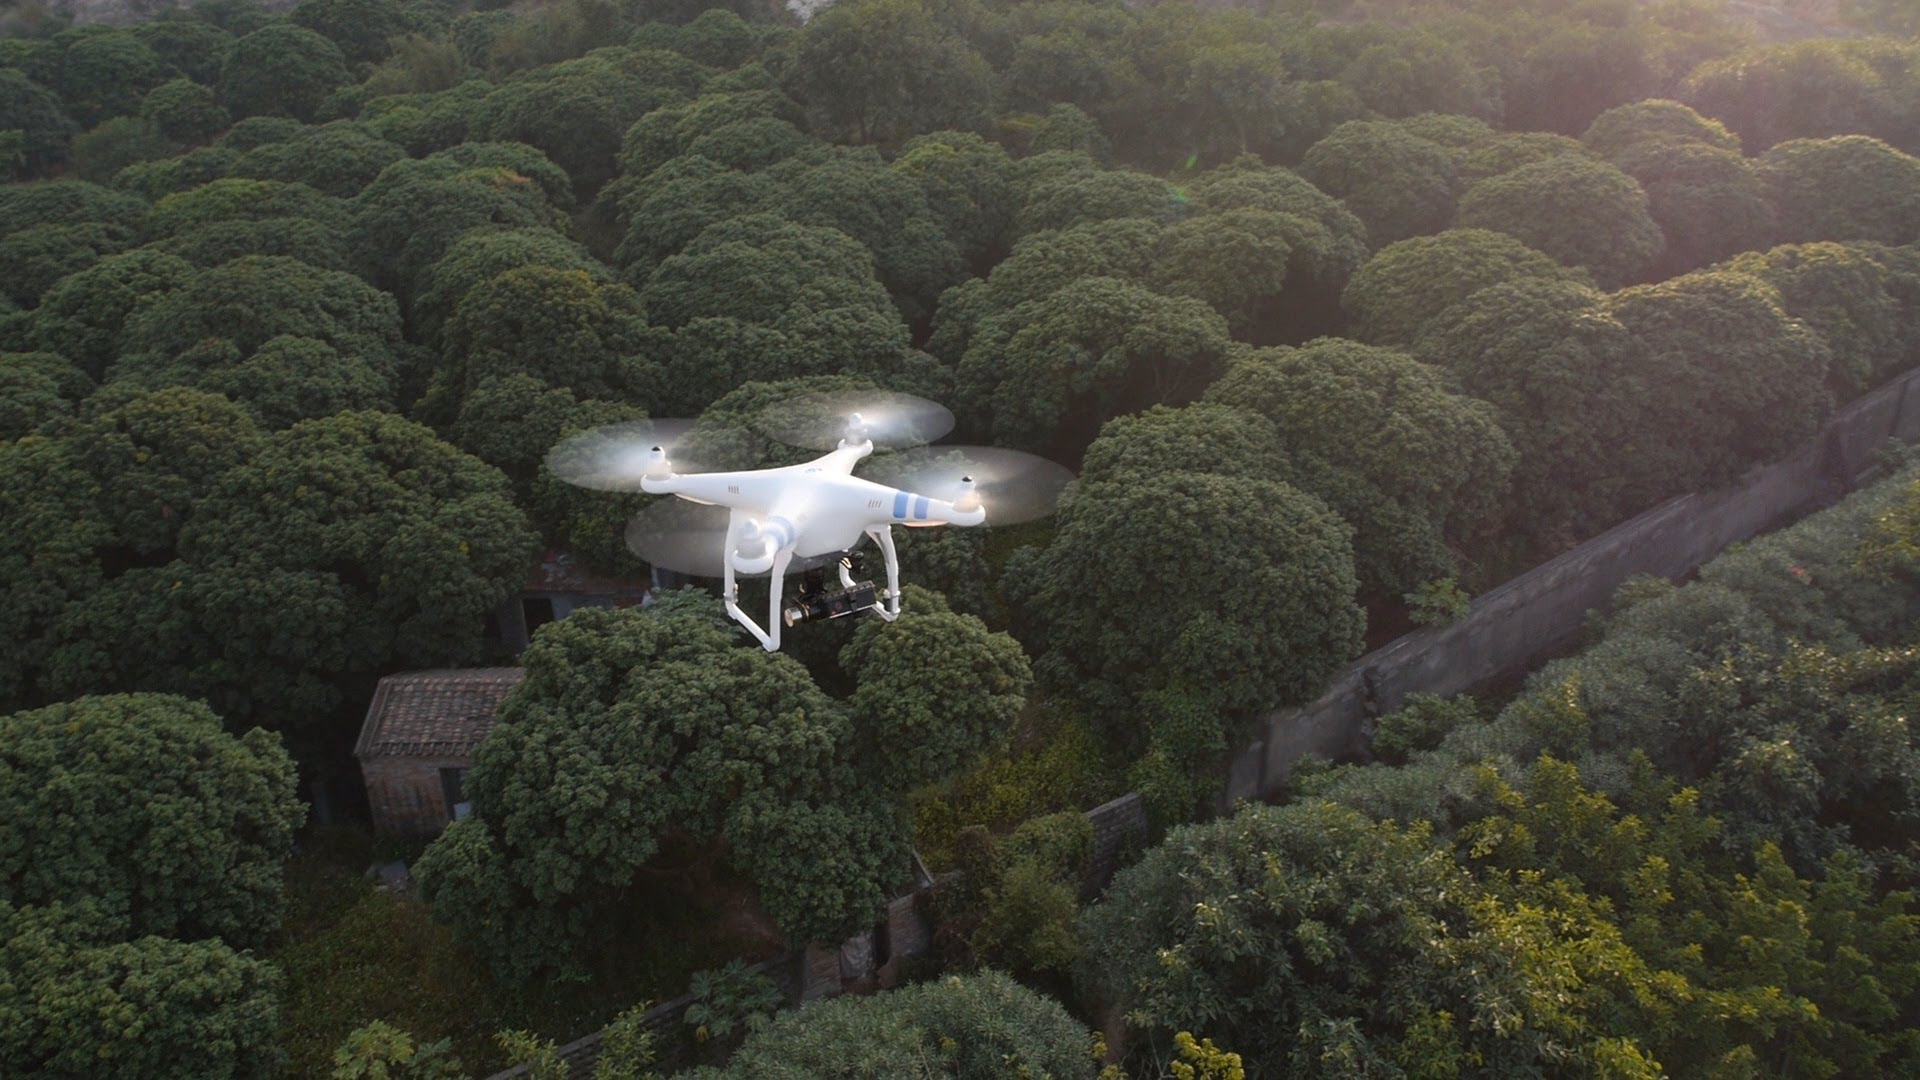 DJI Phantom 2 Vision Plus Unmanned Aerial Systems A Beginners Guide